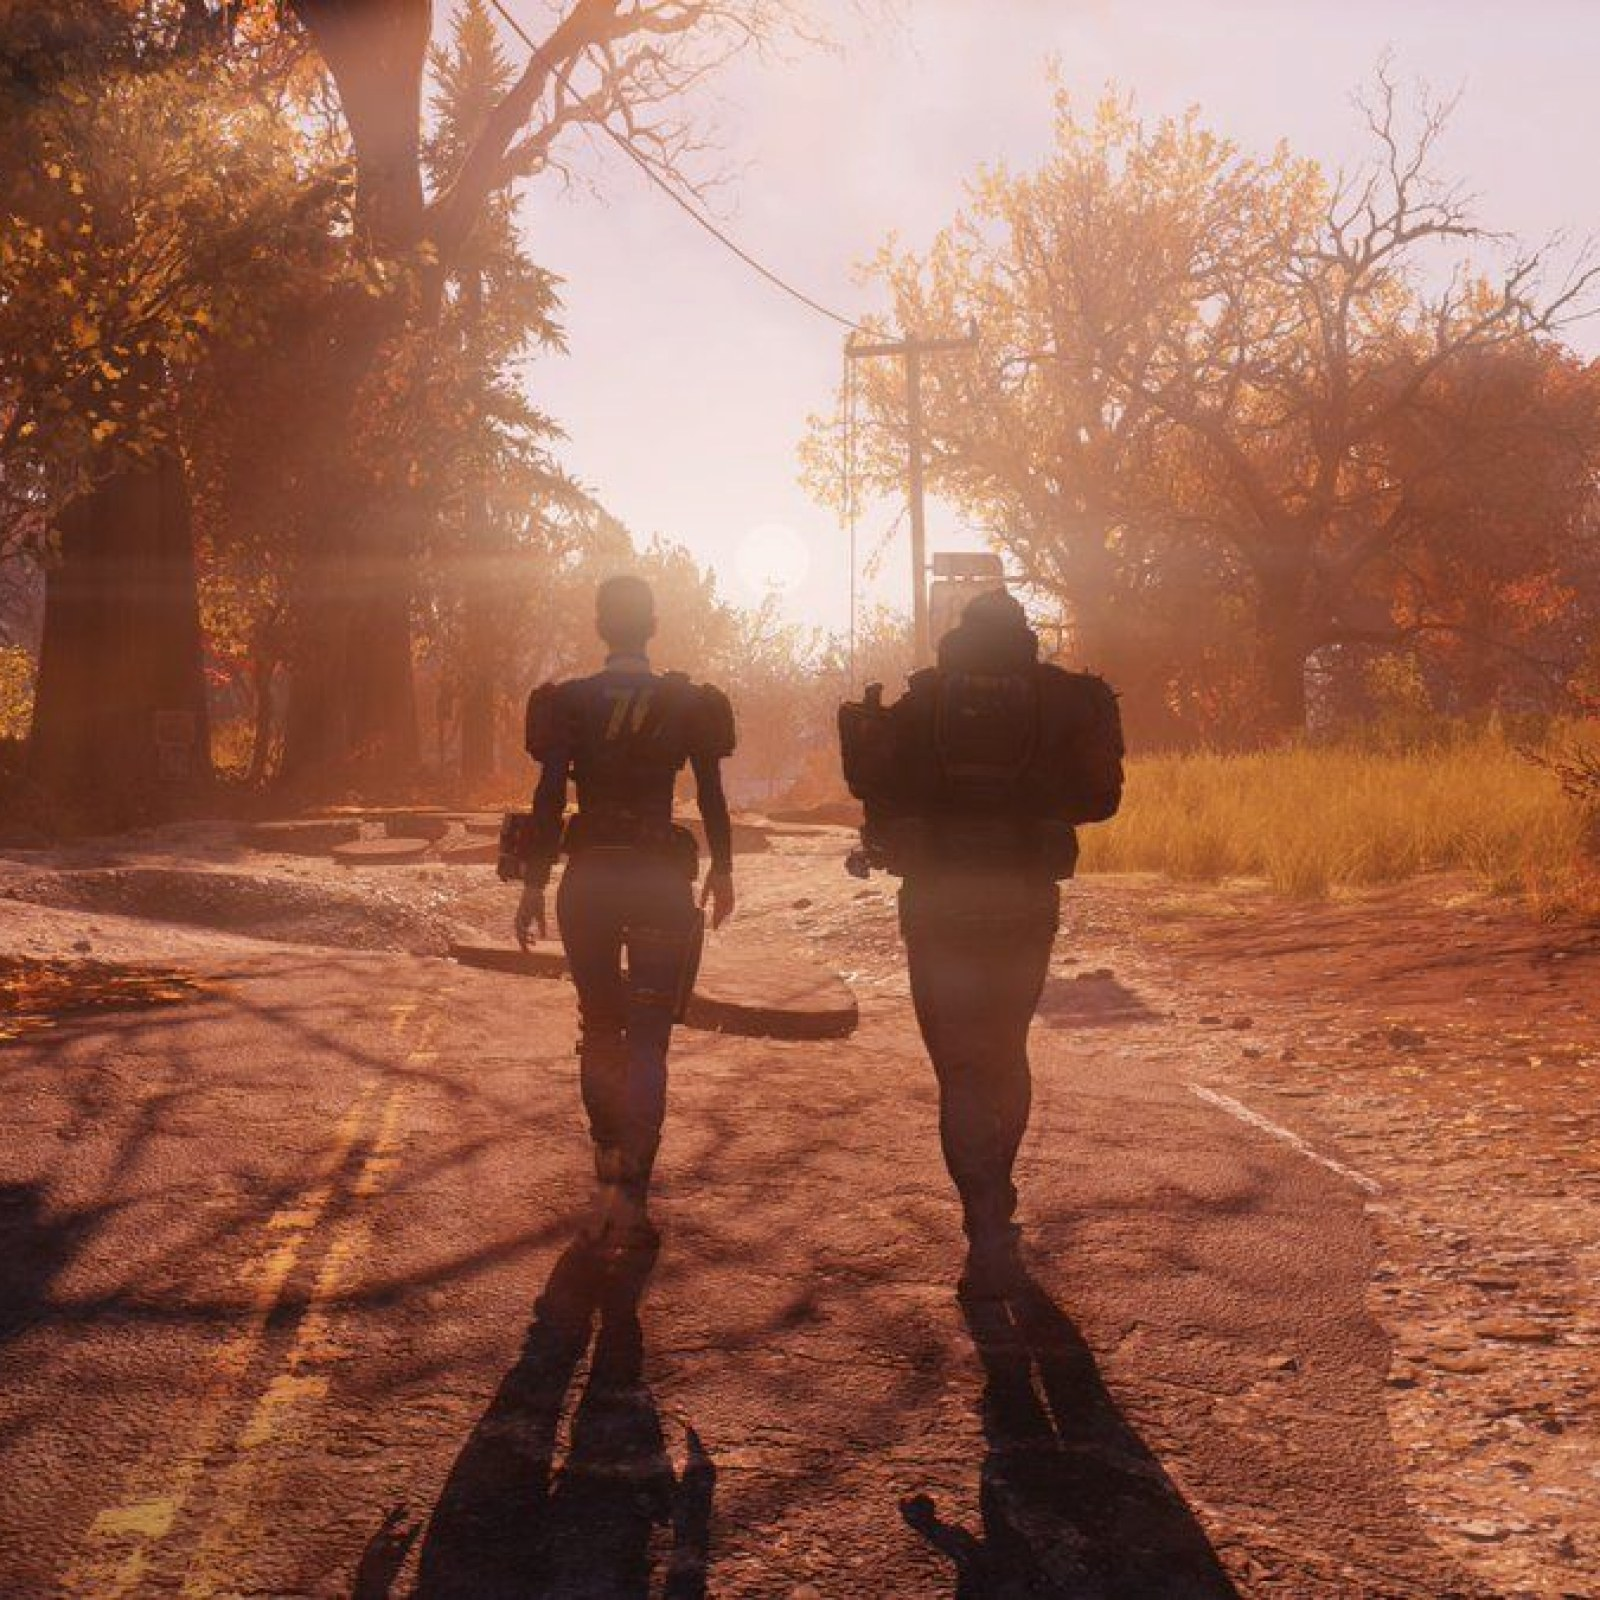 Fallout 76' 1 0 3 Patch Notes: Update Adds Bulldozer, Fixes